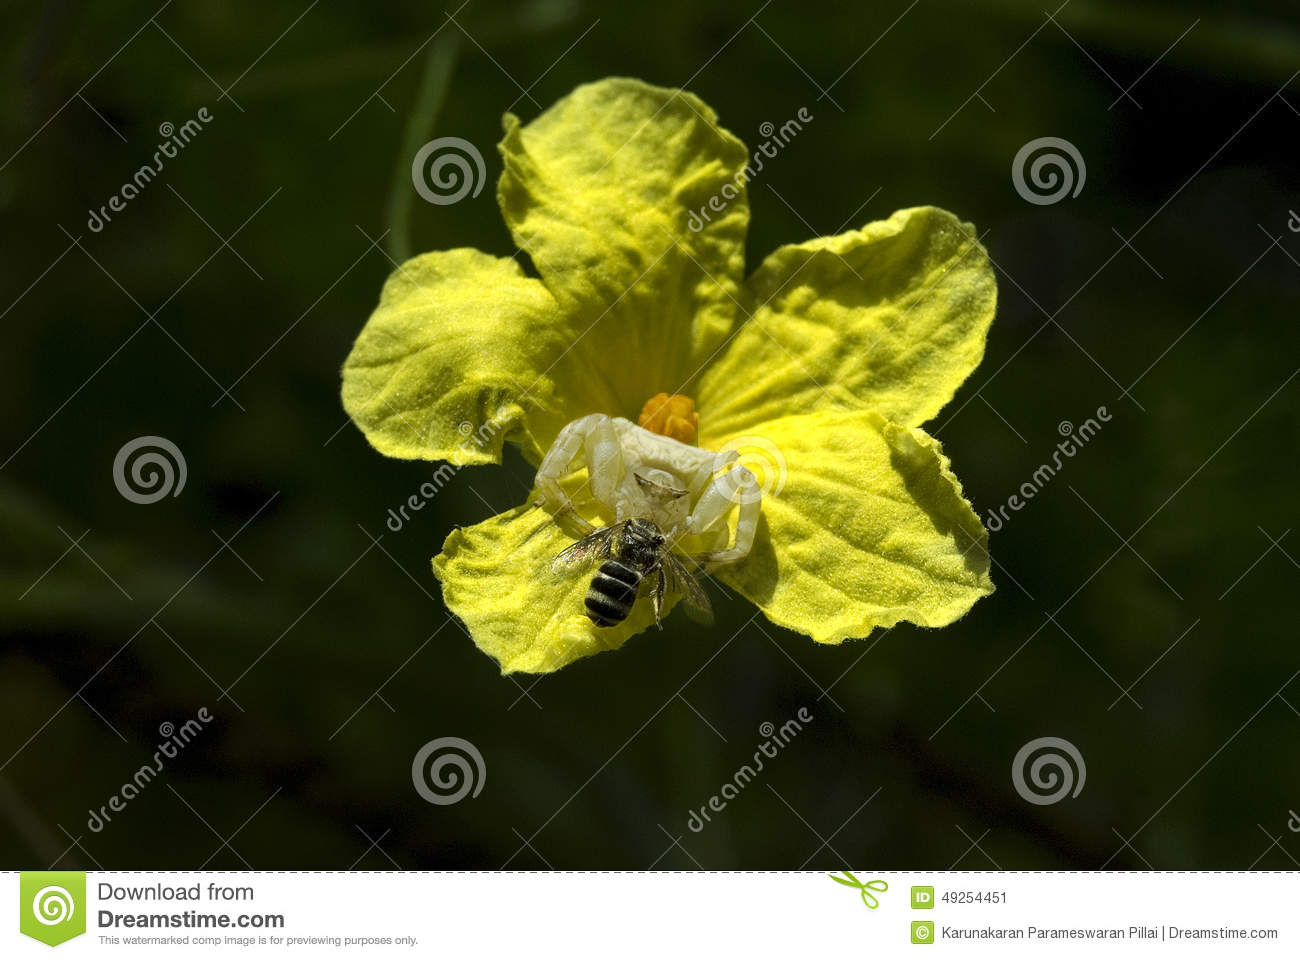 Crab spider preying bumble bee garden spiders spiders flower spiders - Crab Spider Preying On Bumble Bee Garden Spiders Crab Spiders Or Flower